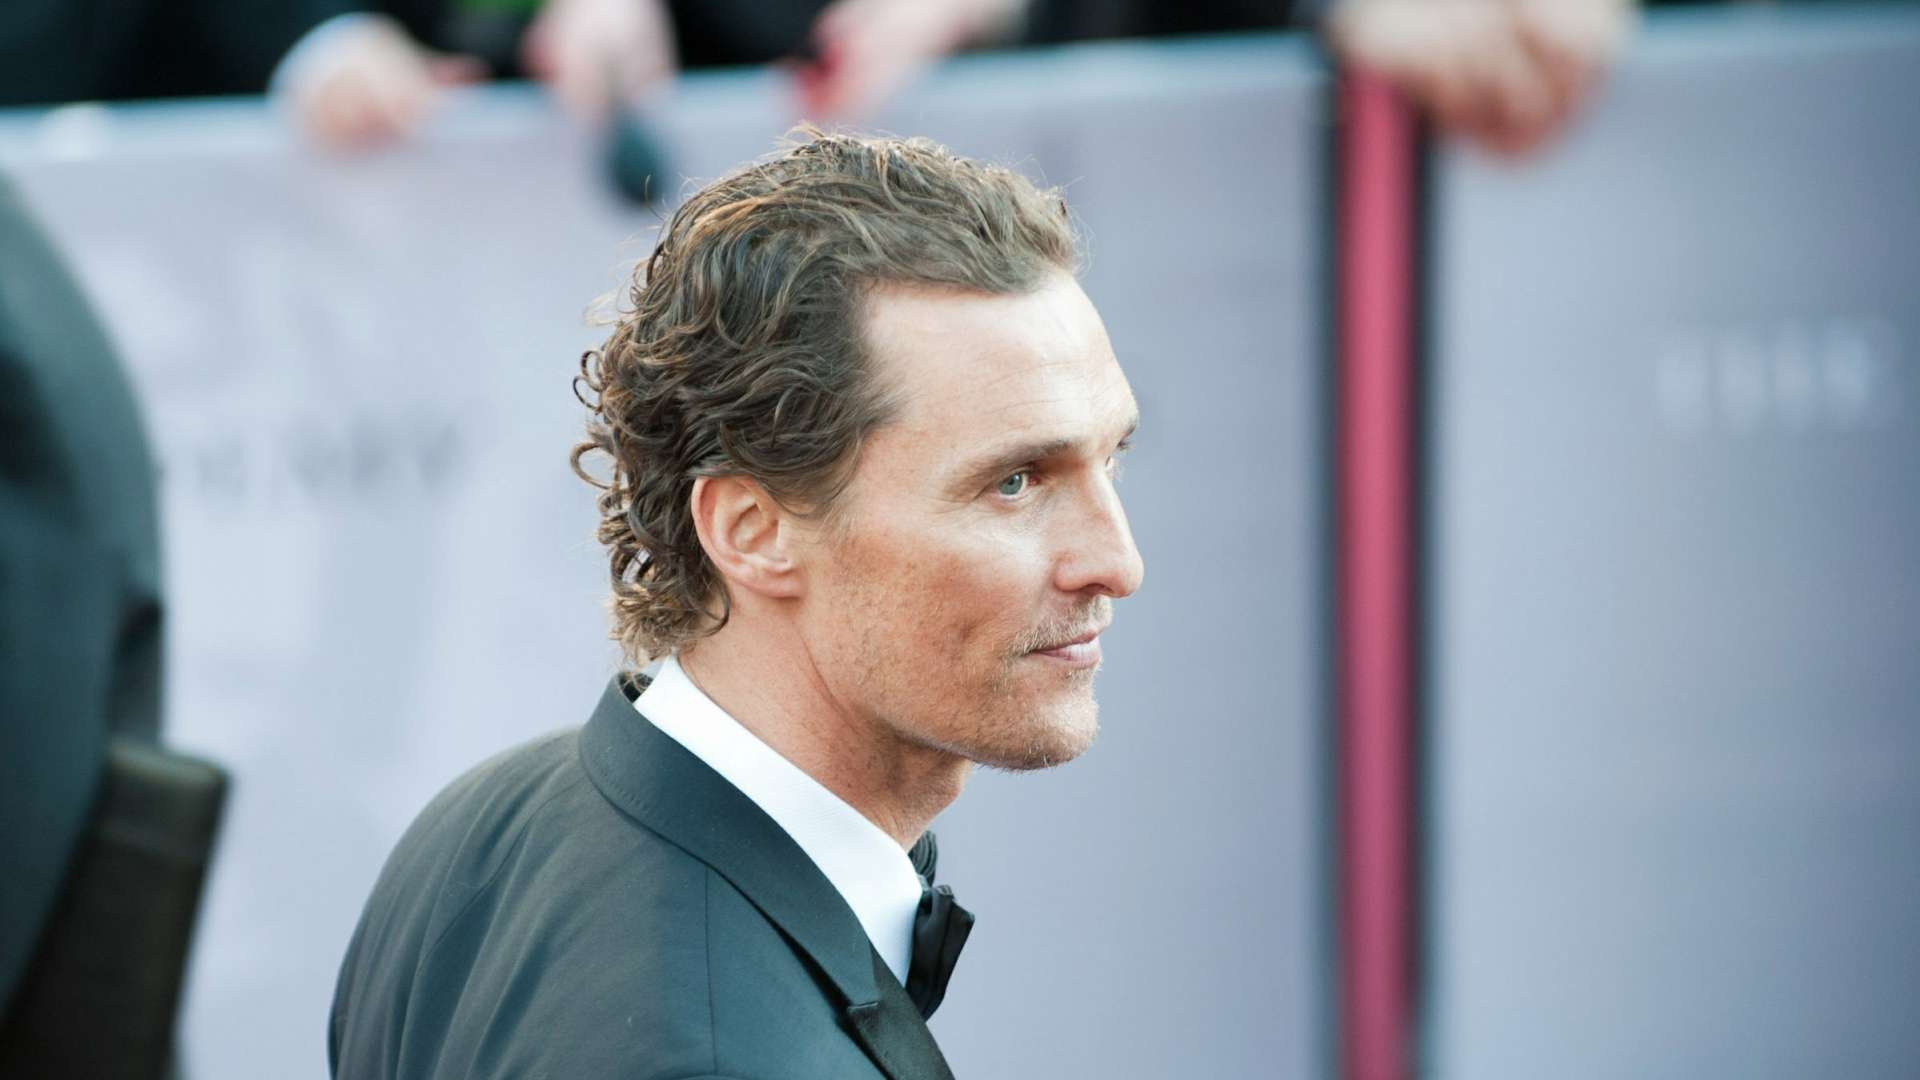 matthew mcconaughey celebrity wallpaper 56133